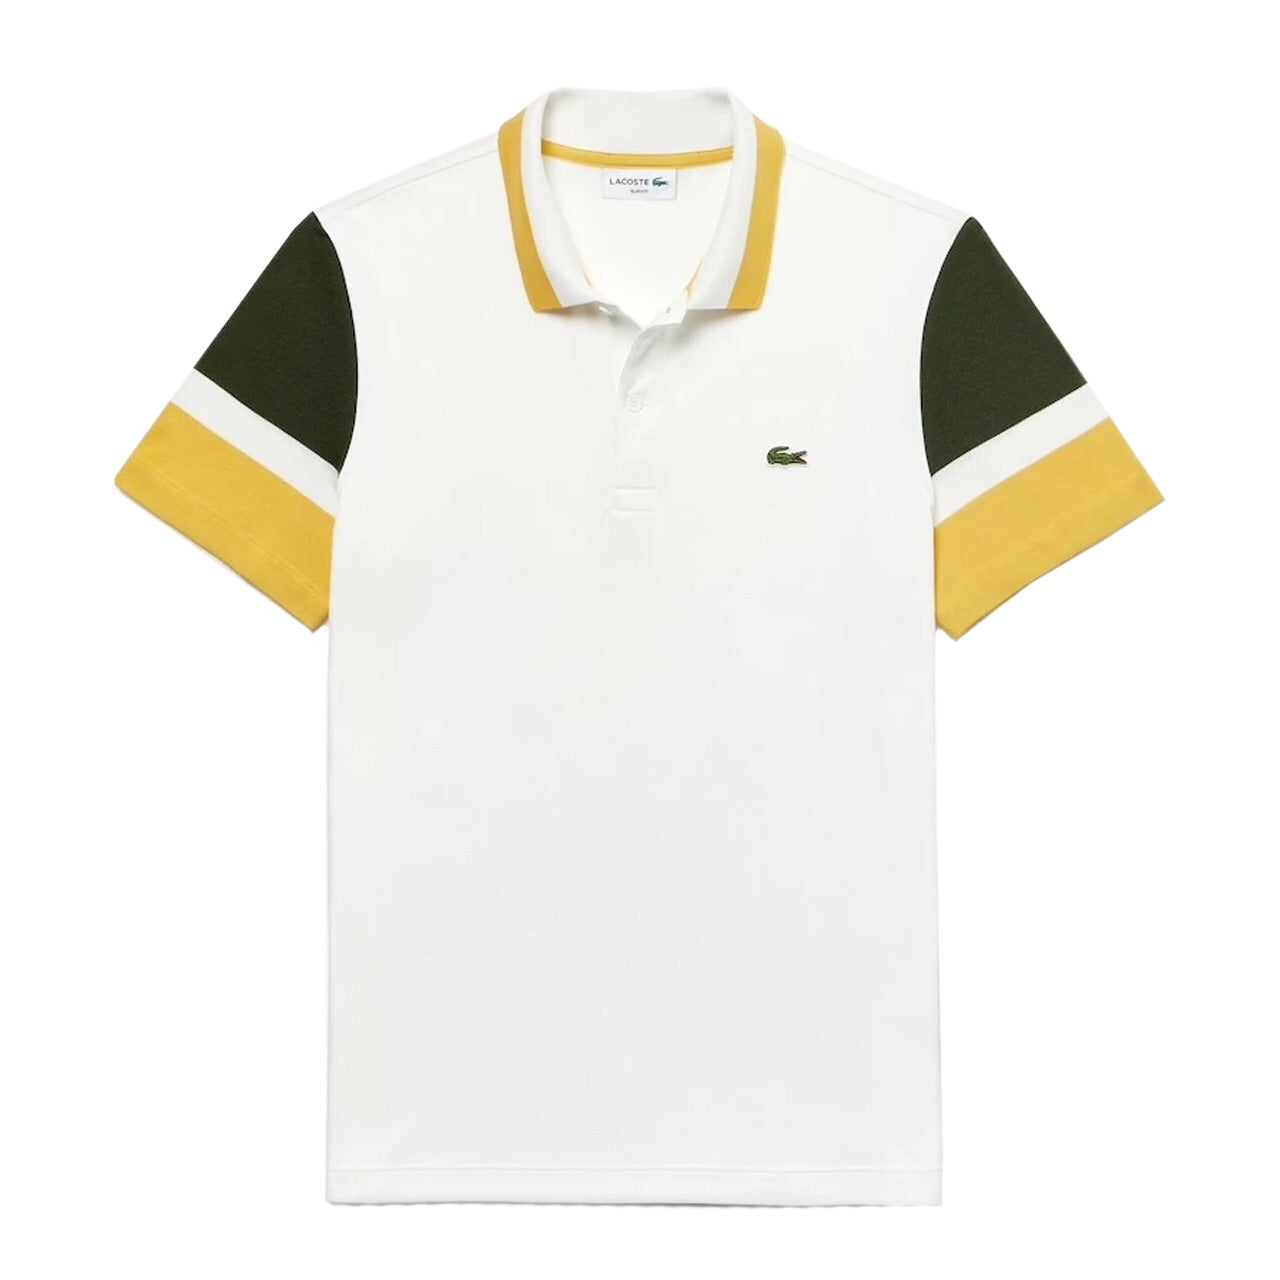 Lacoste Slim Fit Colourblock Stretch Pima Piqué Polo Shirt White / Khaki Green / Yellow • 7RW